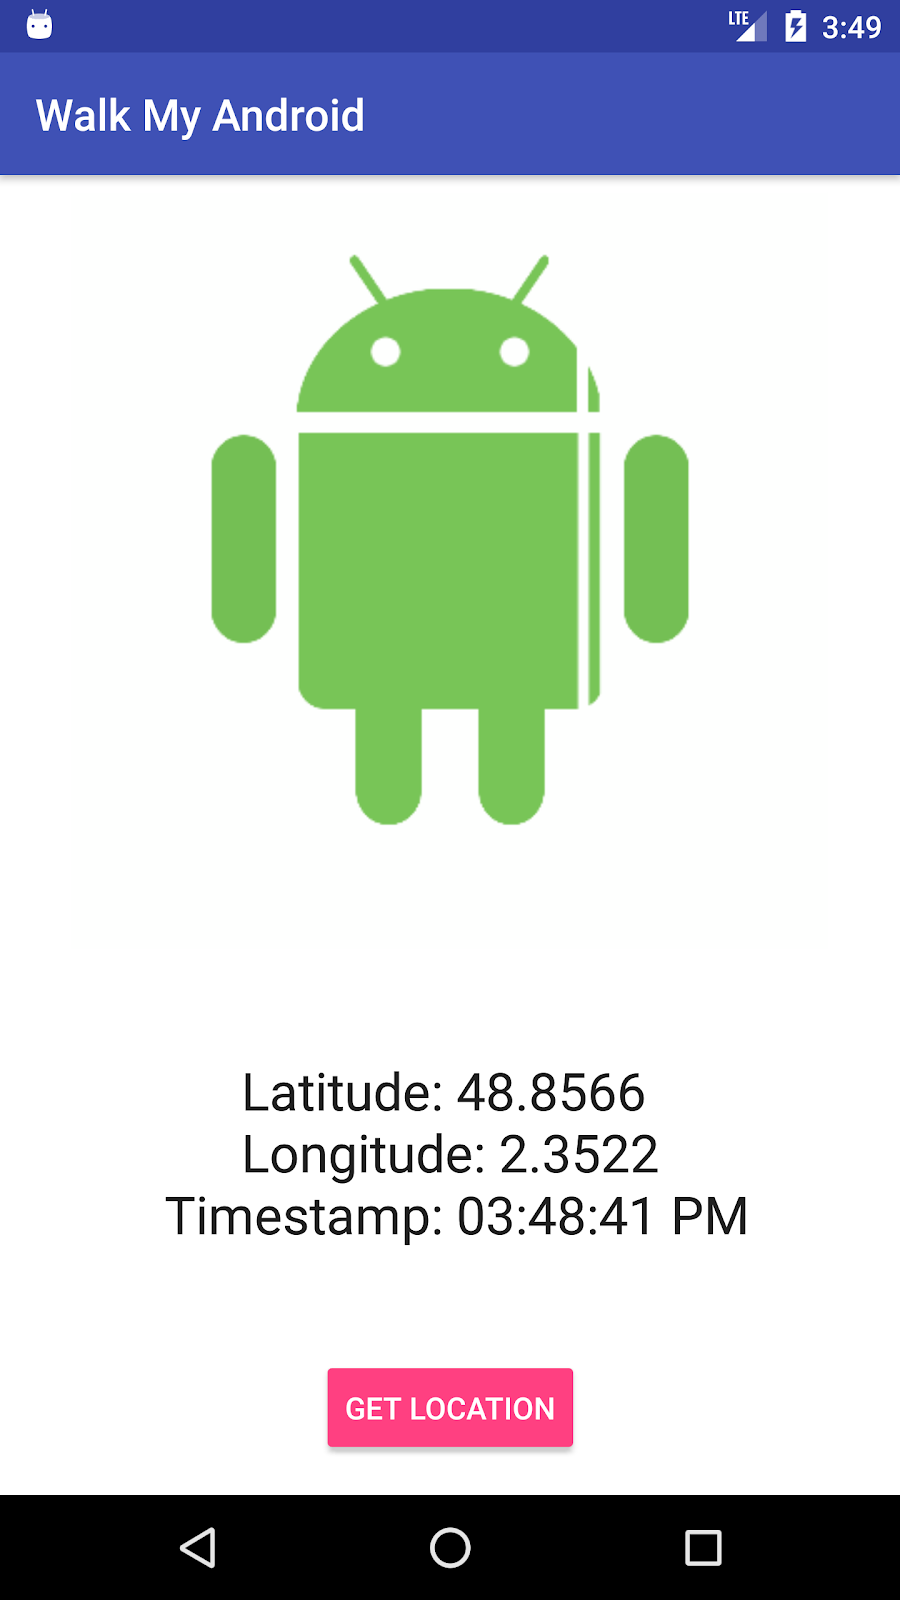 First step of the WalkMyAndroid app